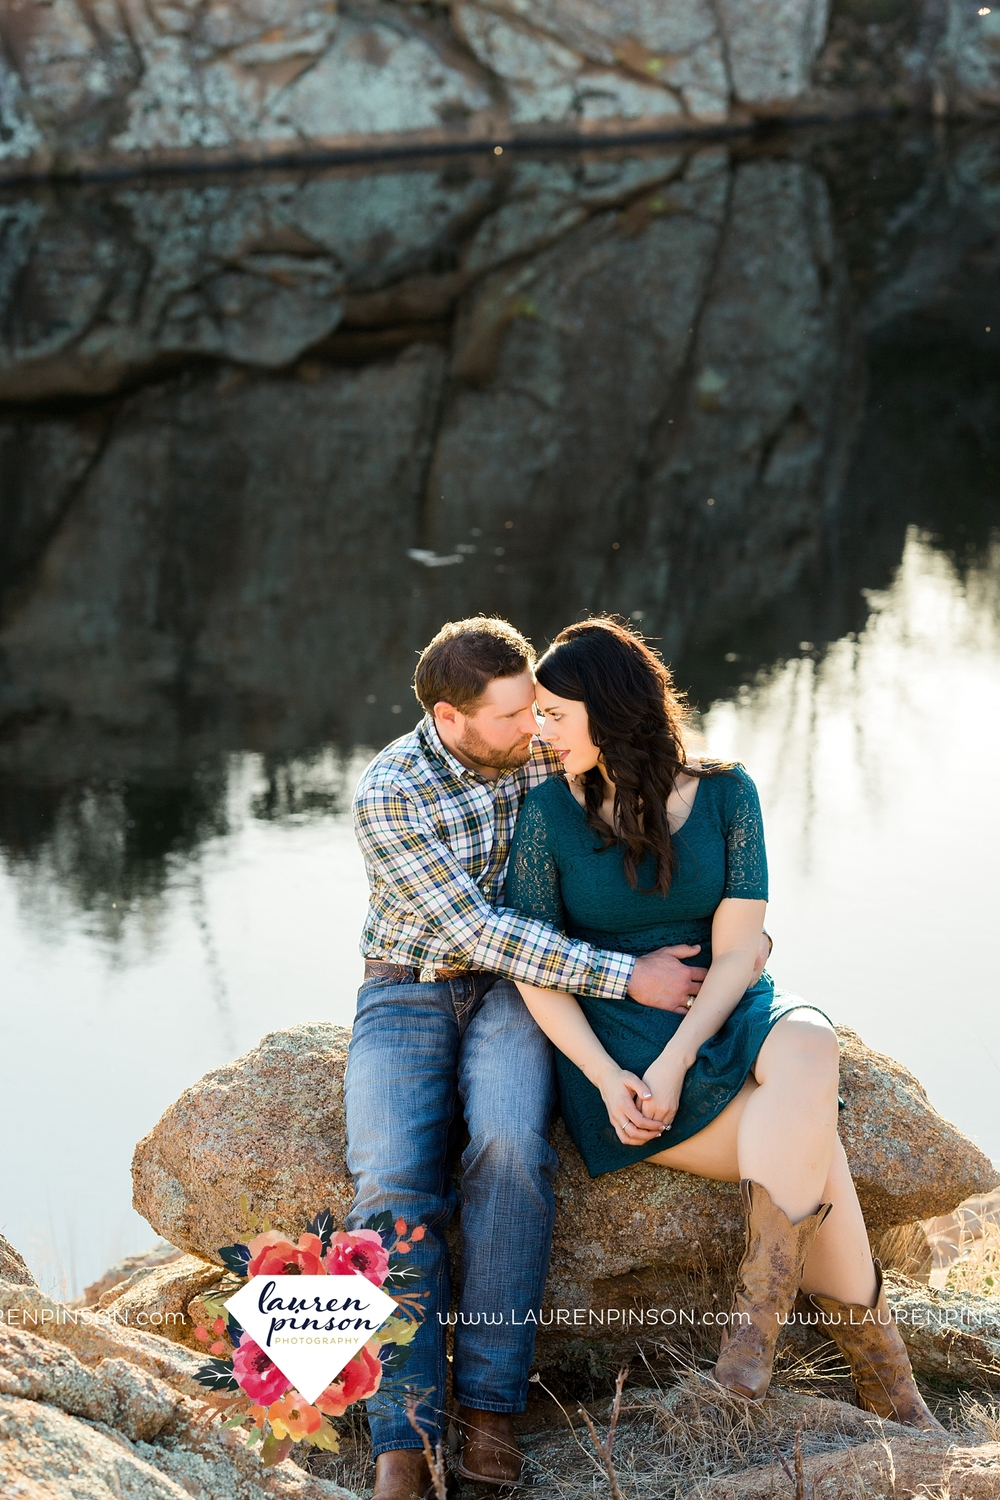 wichita-falls-texas-engagement-photographer-wedding-oklahoma-lawton-wichita-mountains-refuge-outdoors-mountains-engaged_2056.jpg